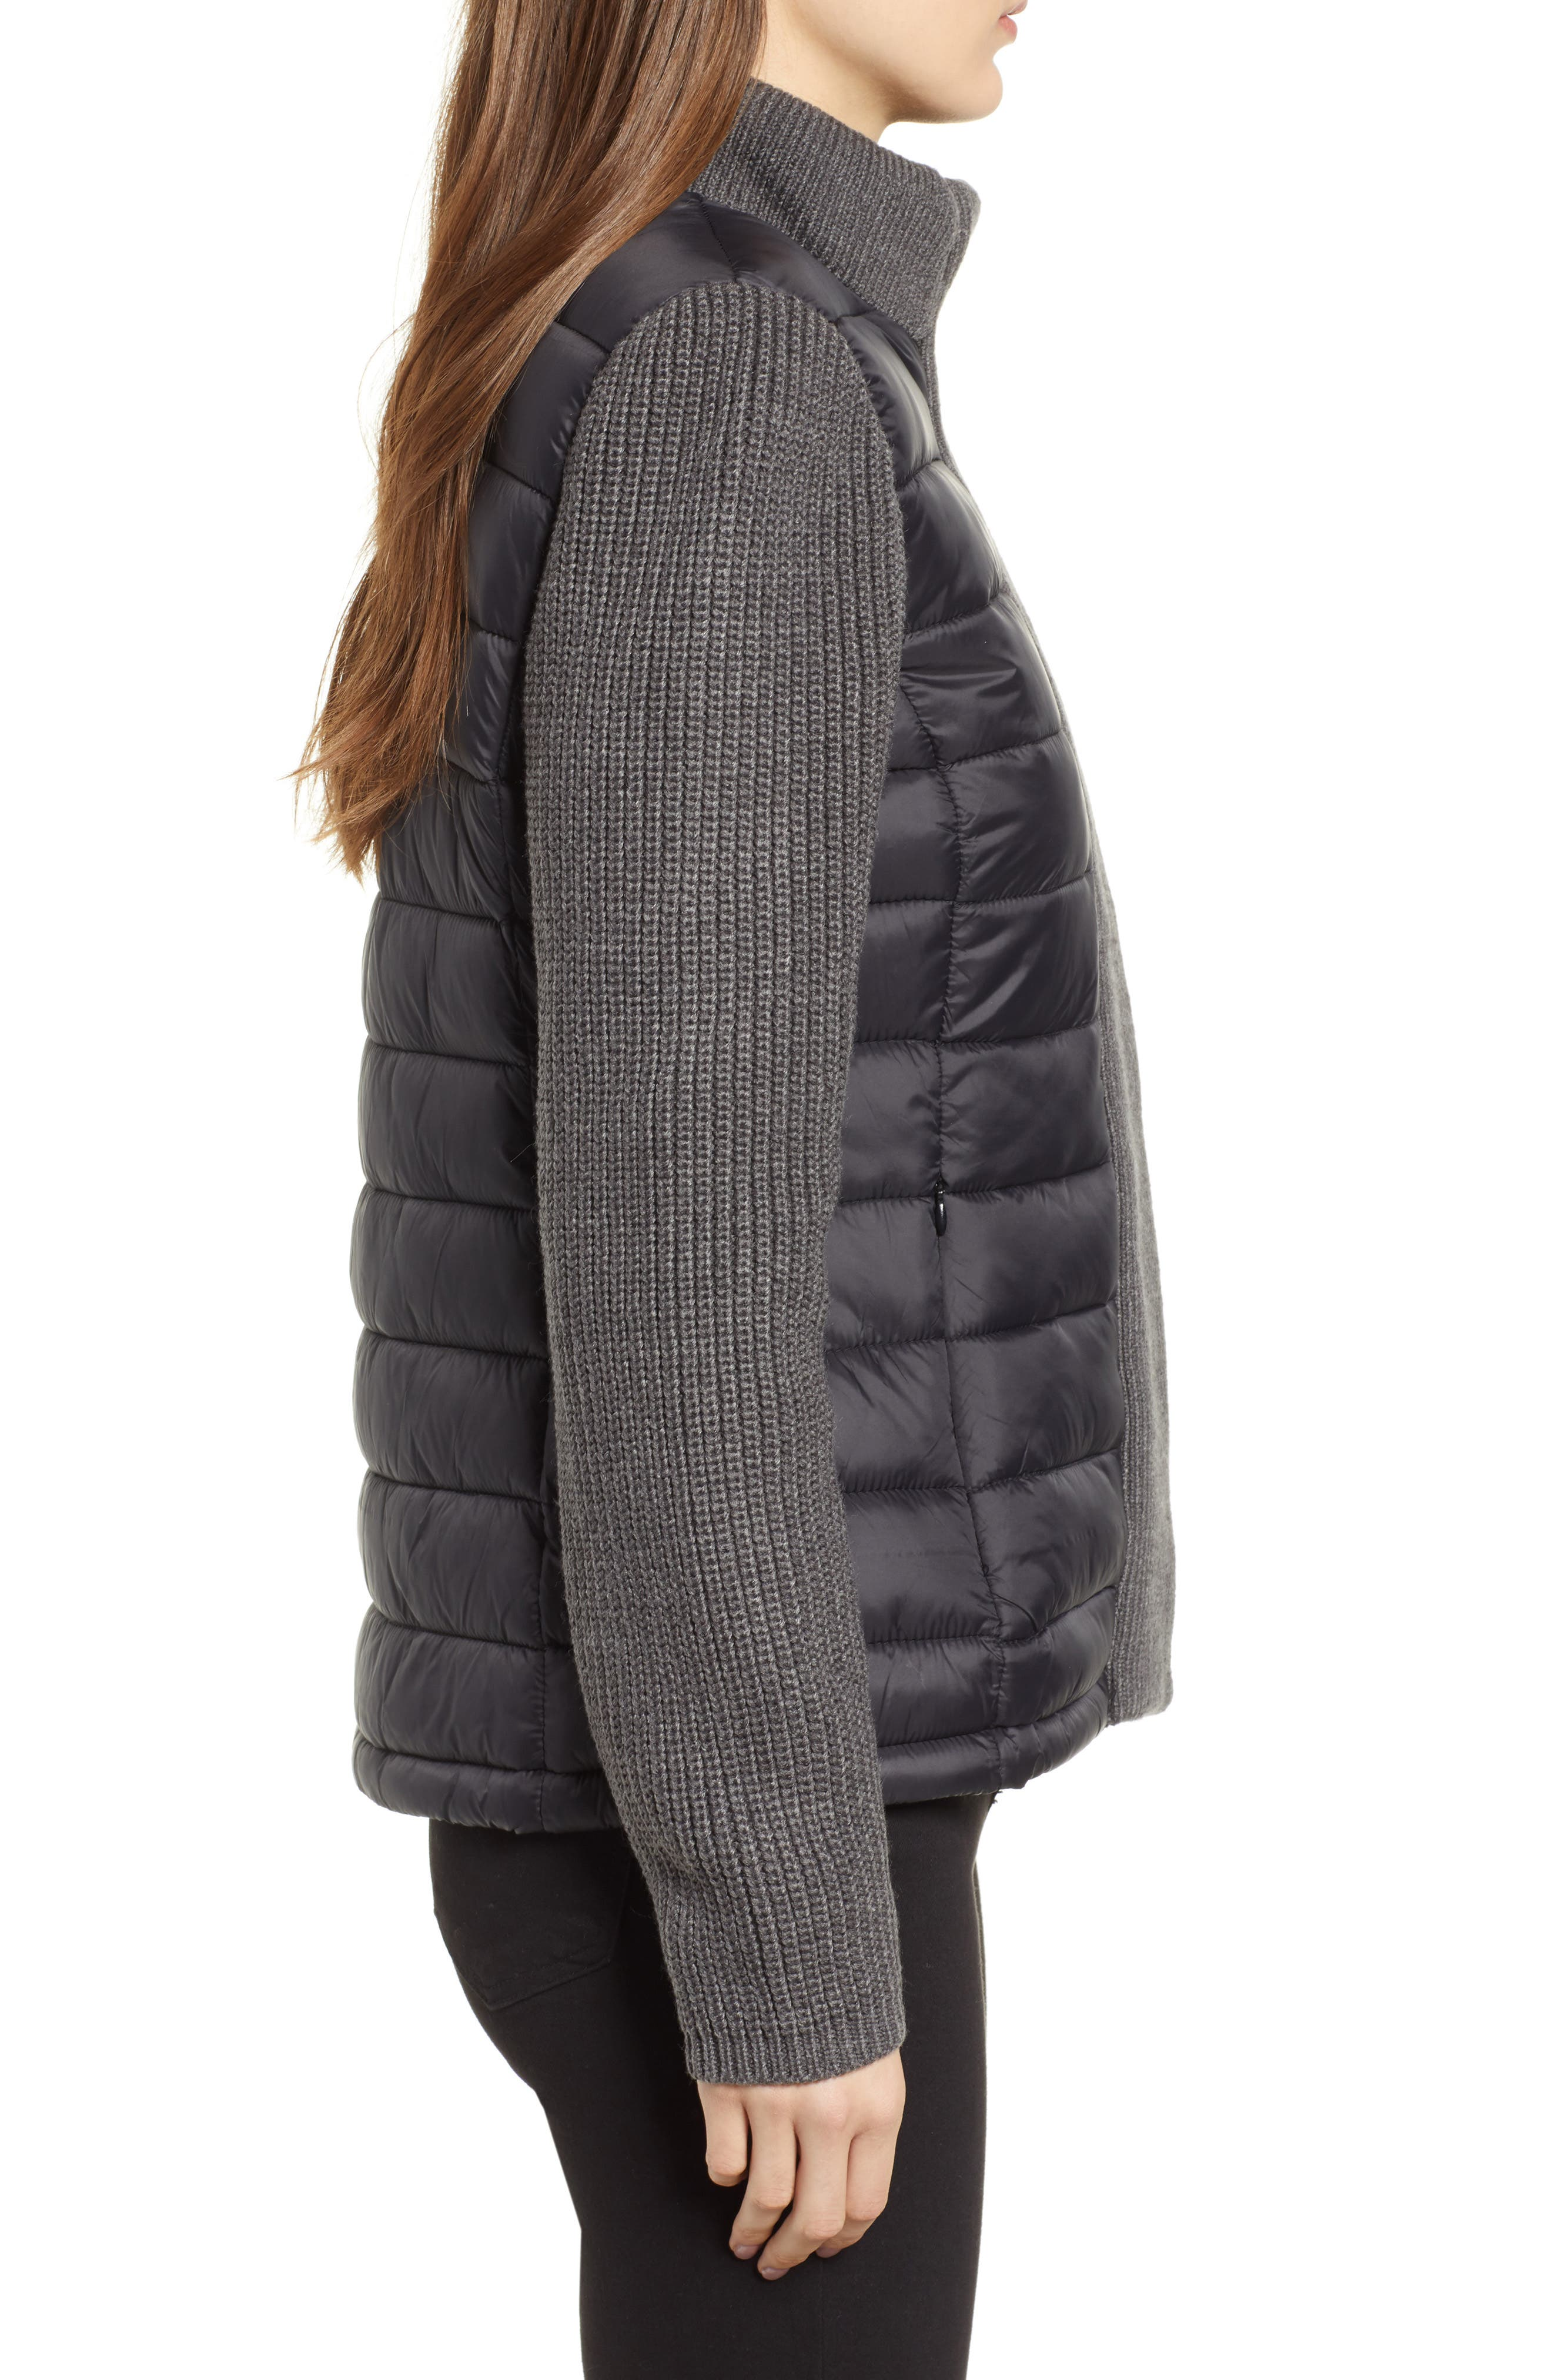 MARC NEW YORK, Mark New York Packable Knit Trim Puffer Jacket, Alternate thumbnail 4, color, BLACK/ GREY